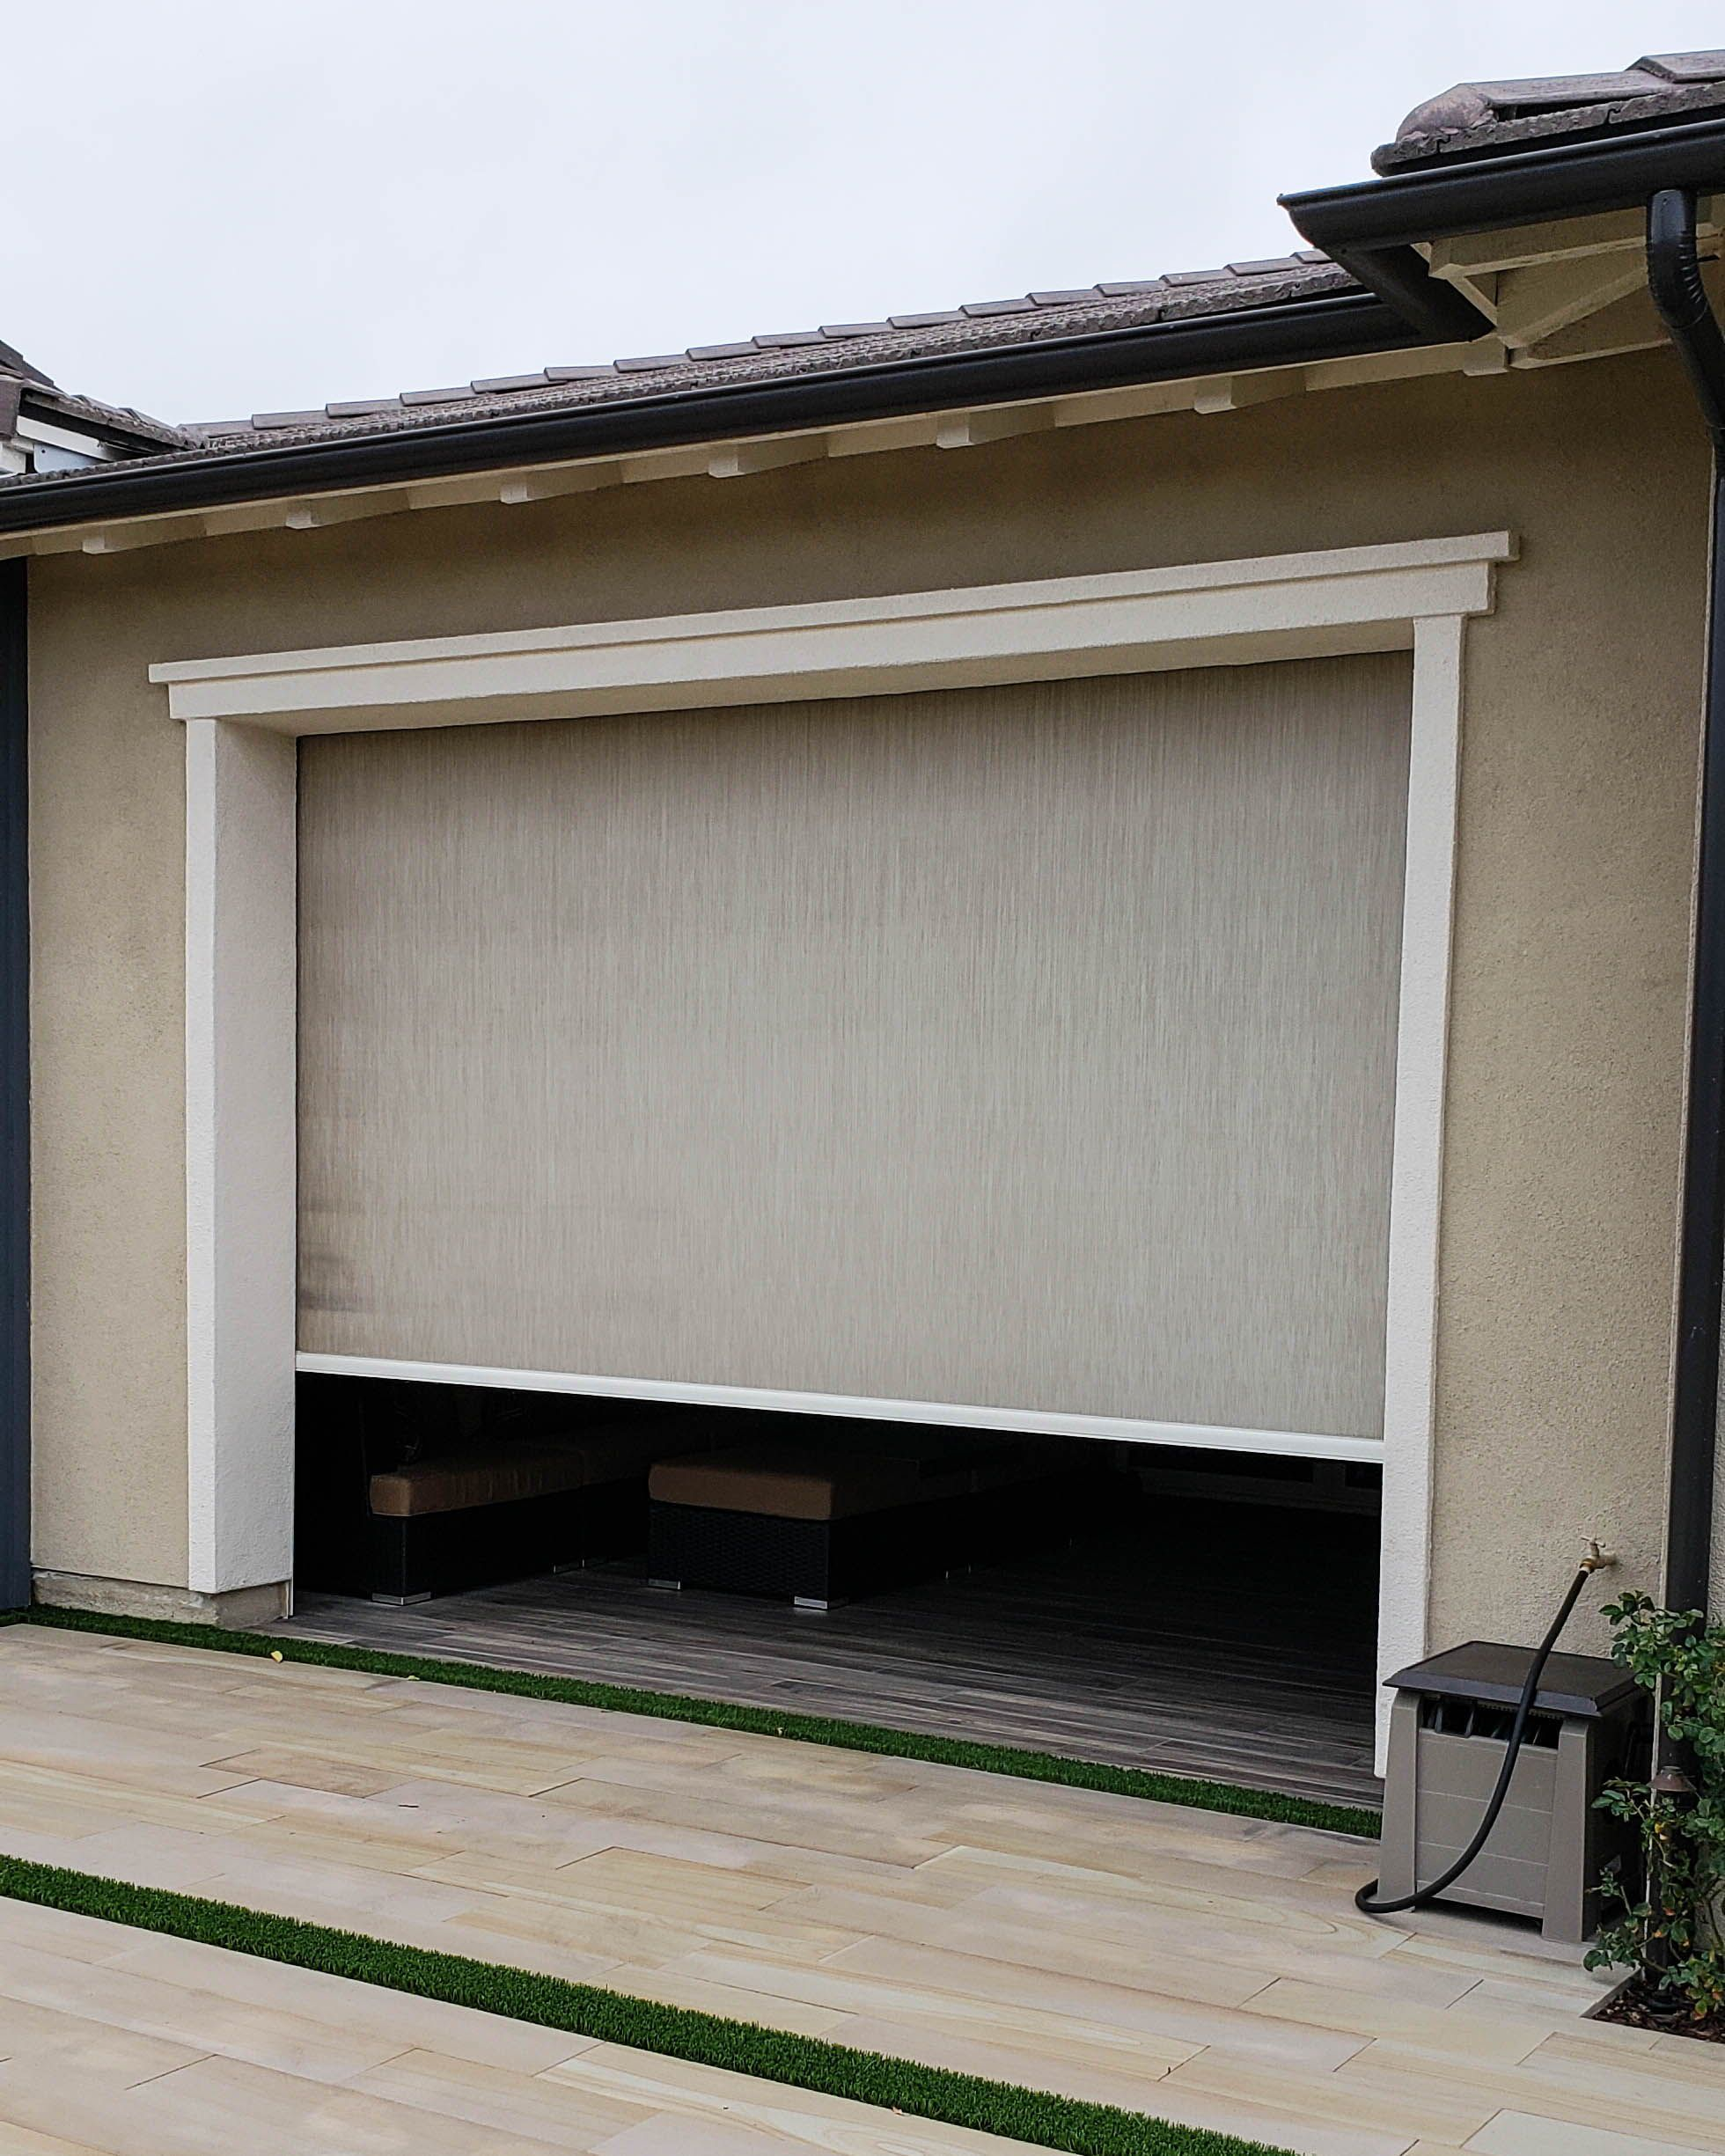 We Install Motorized Power Screens In Rancho Mission Viejo California In Orange County We Ve Been Installi California Room Rancho Mission Viejo New Community